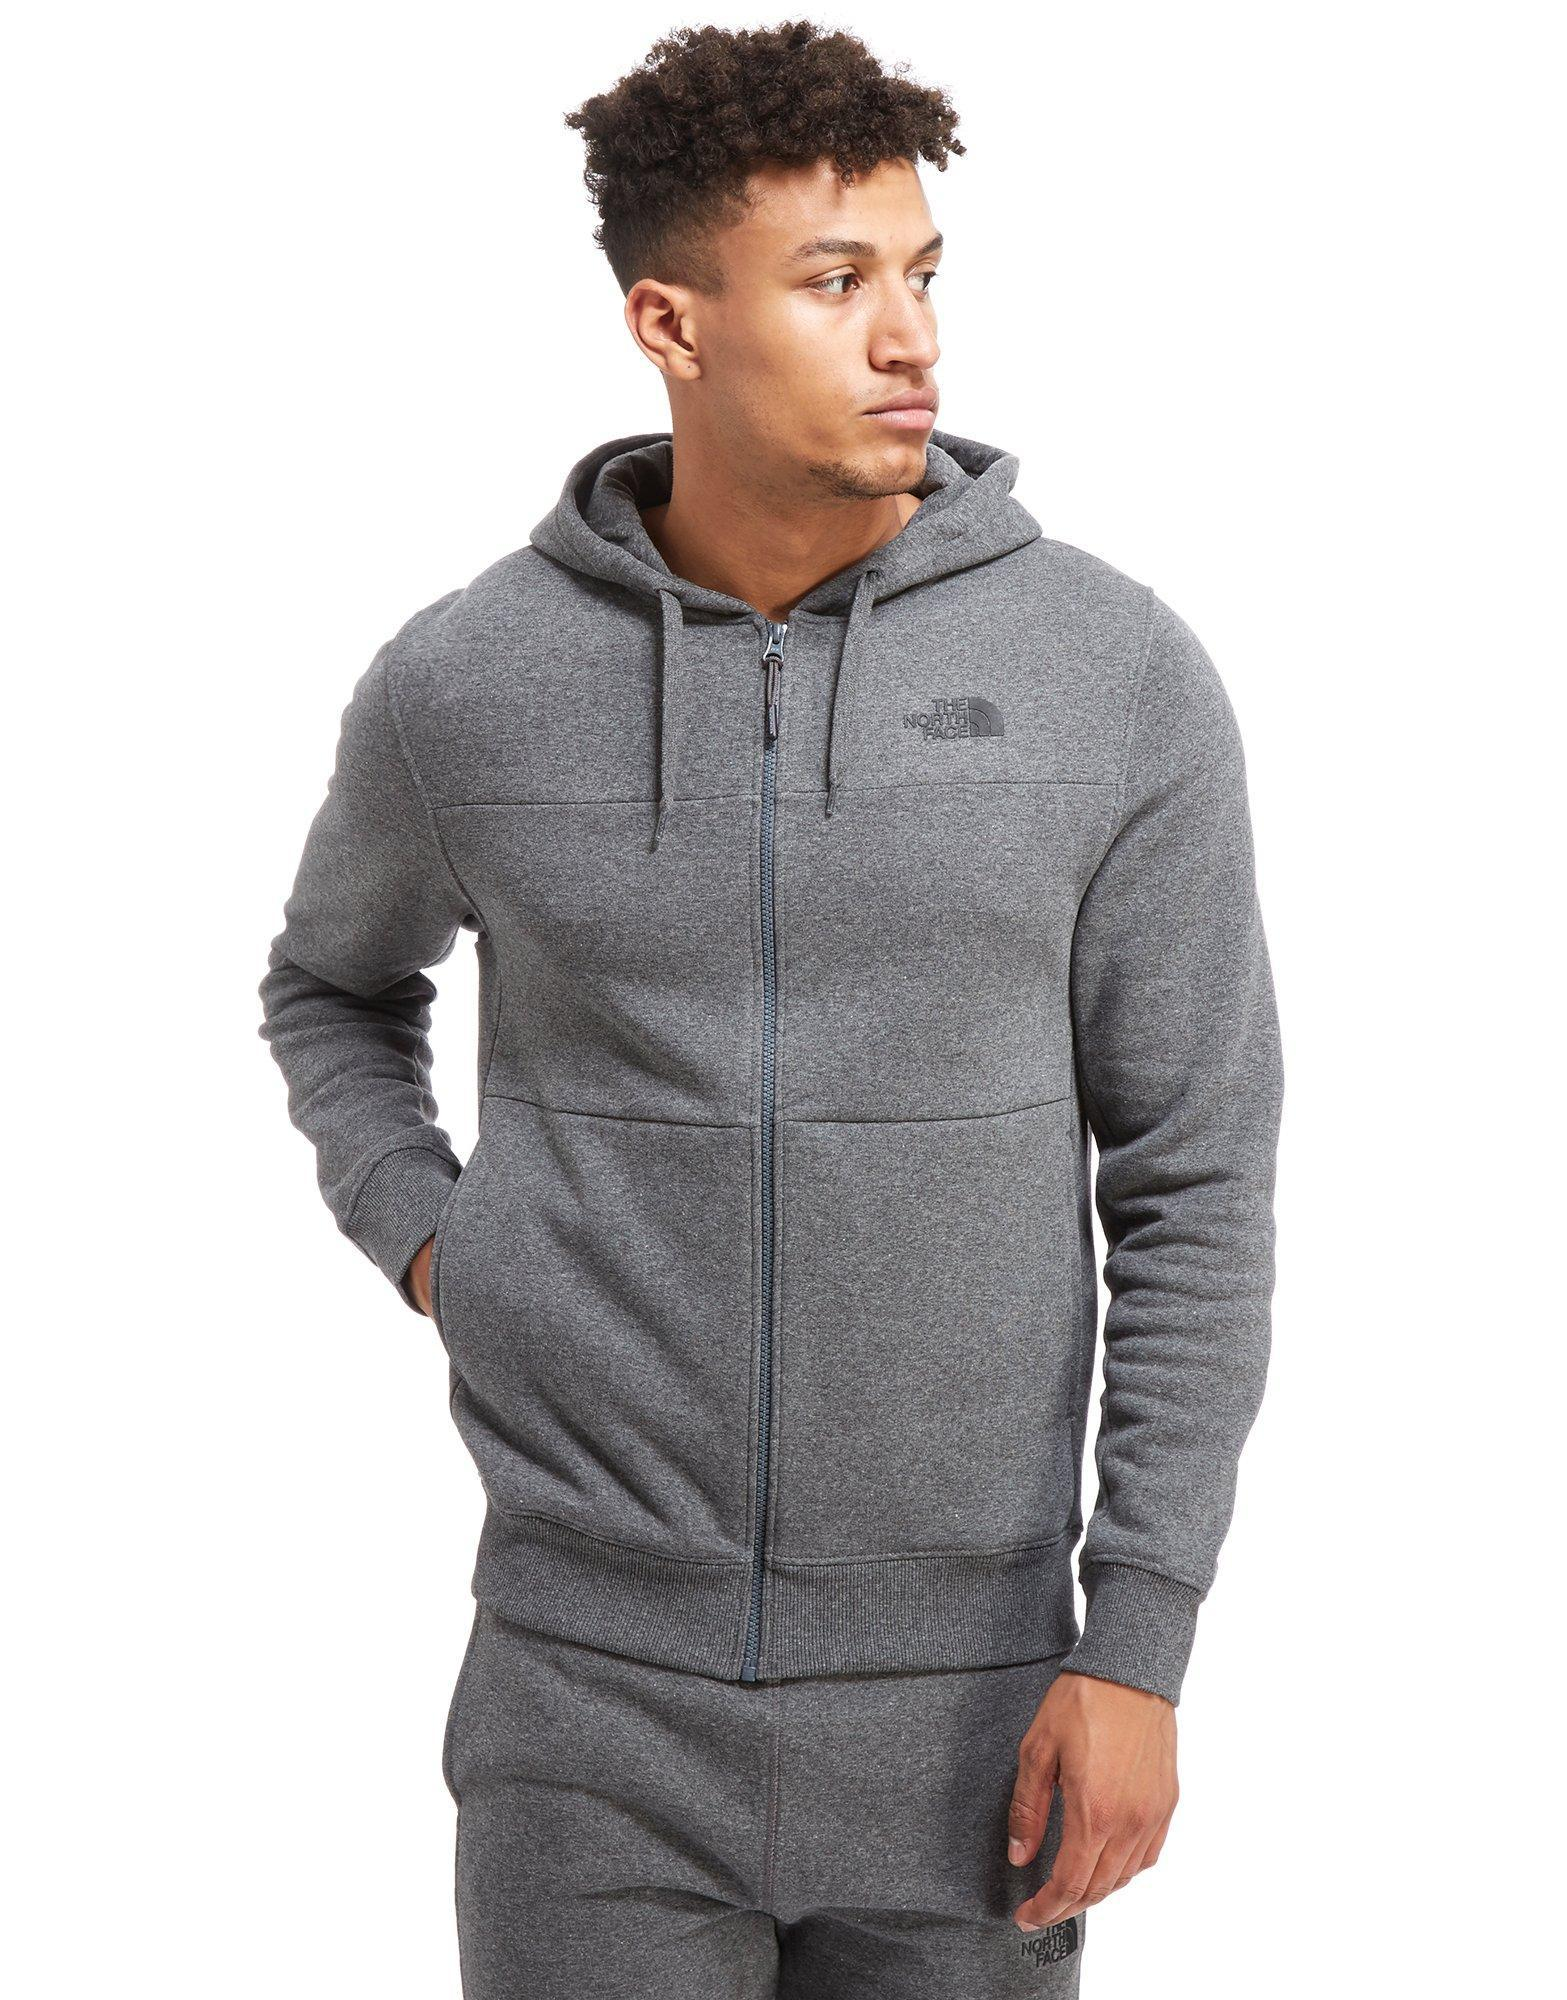 643ce747a The North Face Gray Bondi 17 Hoody for men